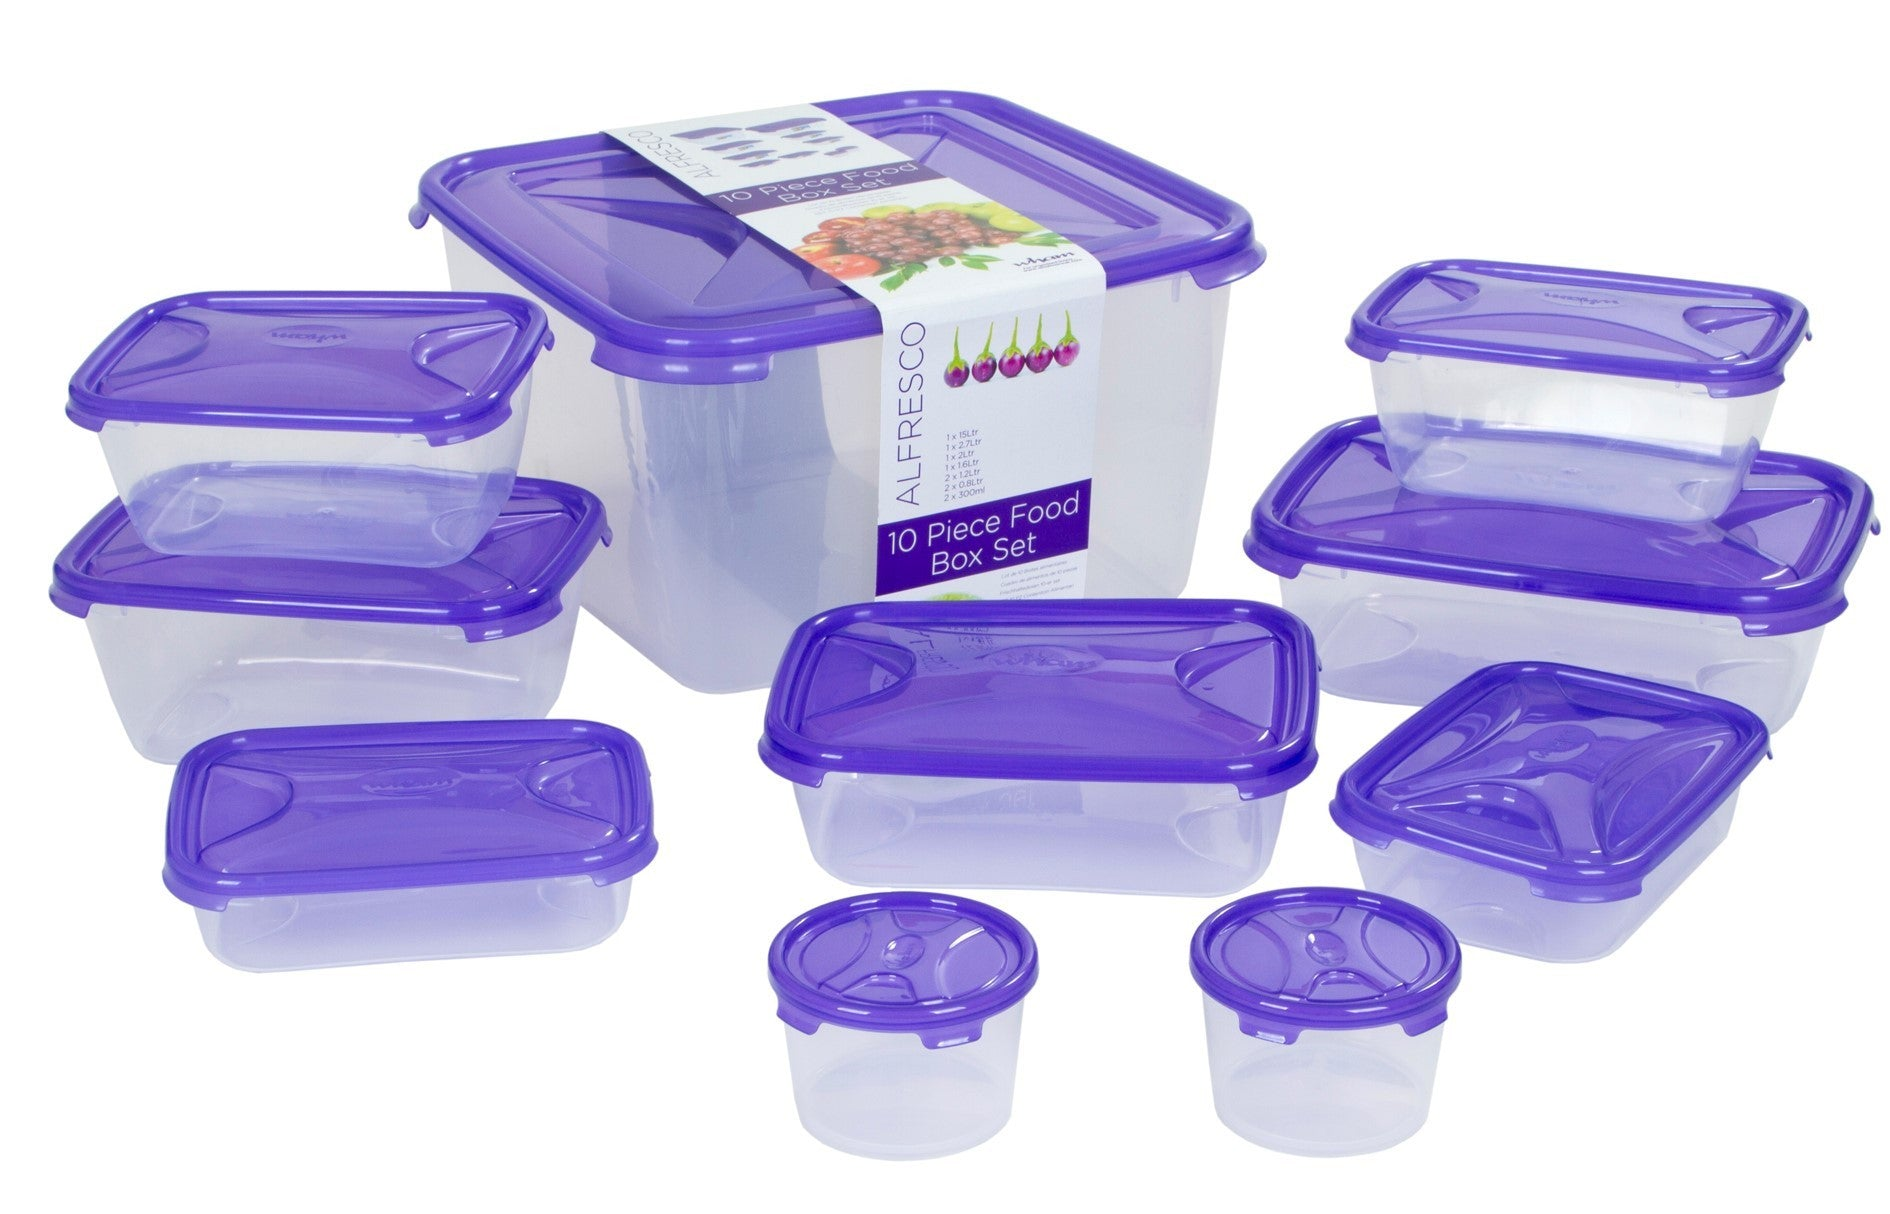 Wham Cuisine 10 Pieces Food Box Set Clear/ Tint Purple- 12212 - Homely Nigeria